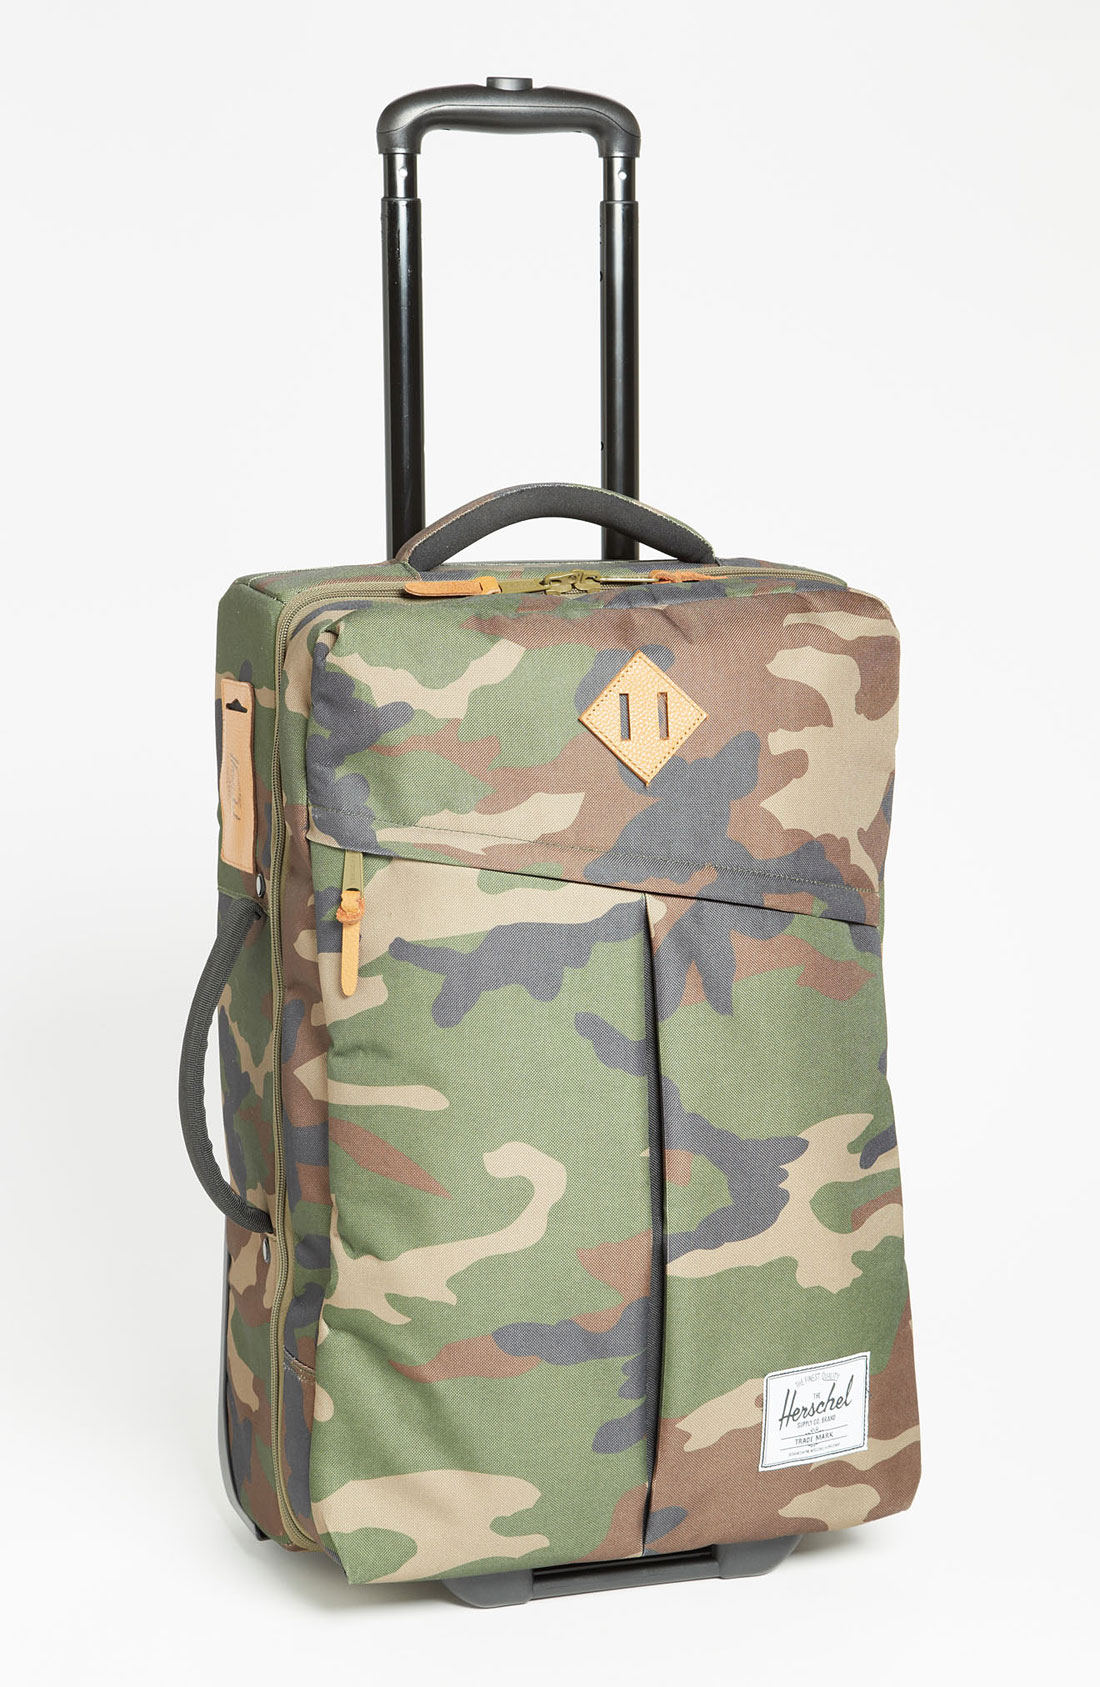 Camo Rolling Luggage Images - Reverse Search